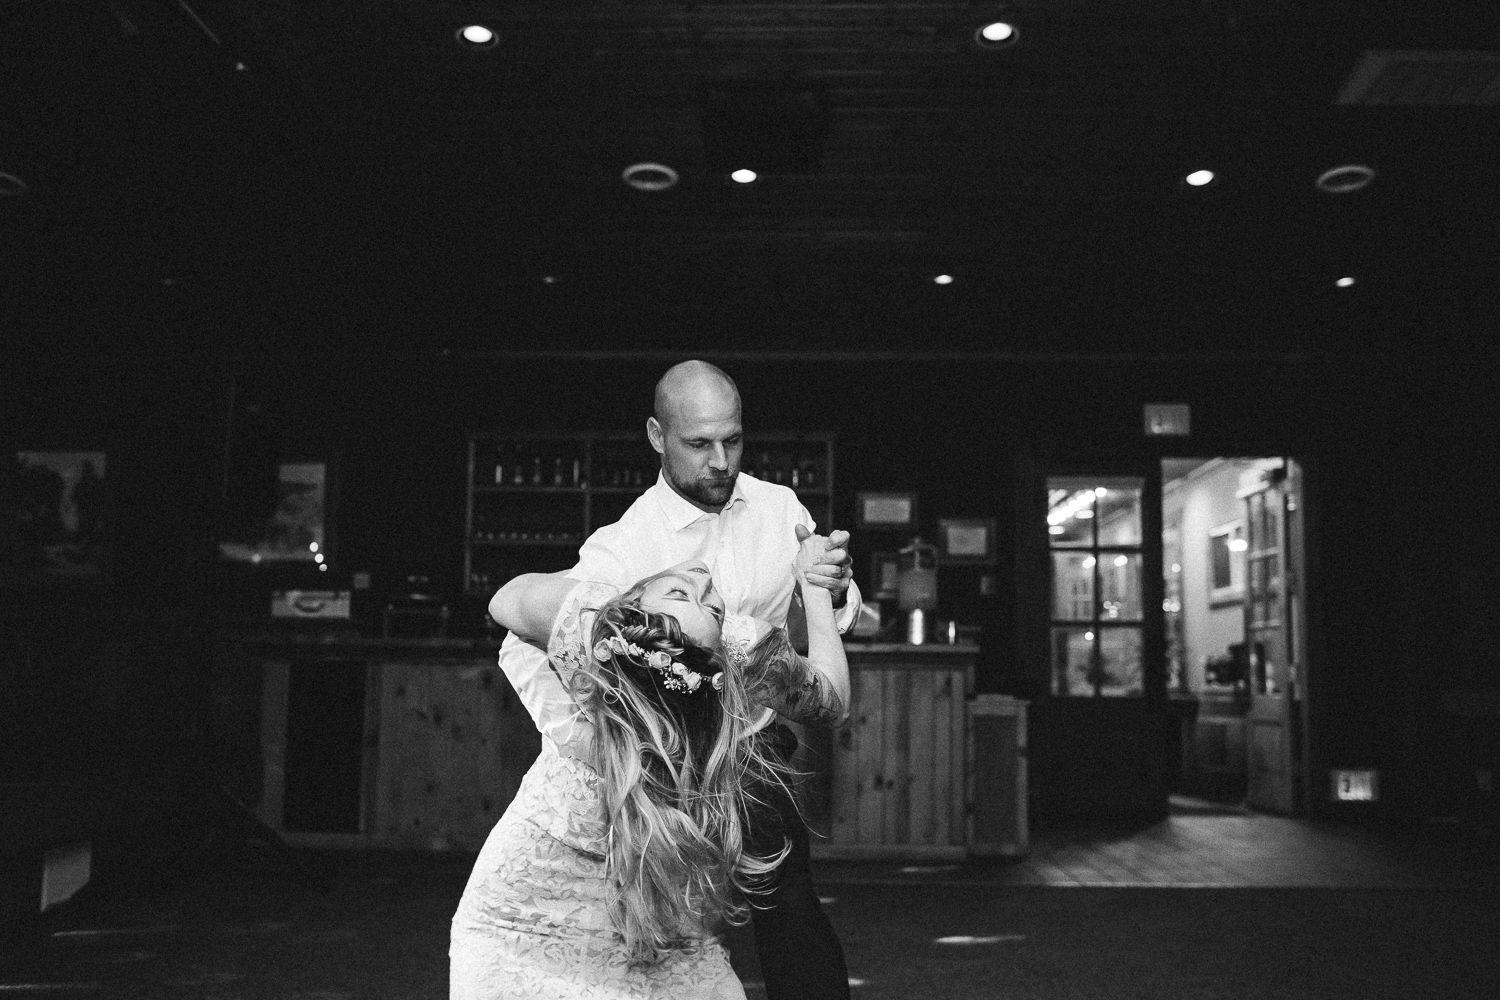 Bride and groom epic first dance dip black and white